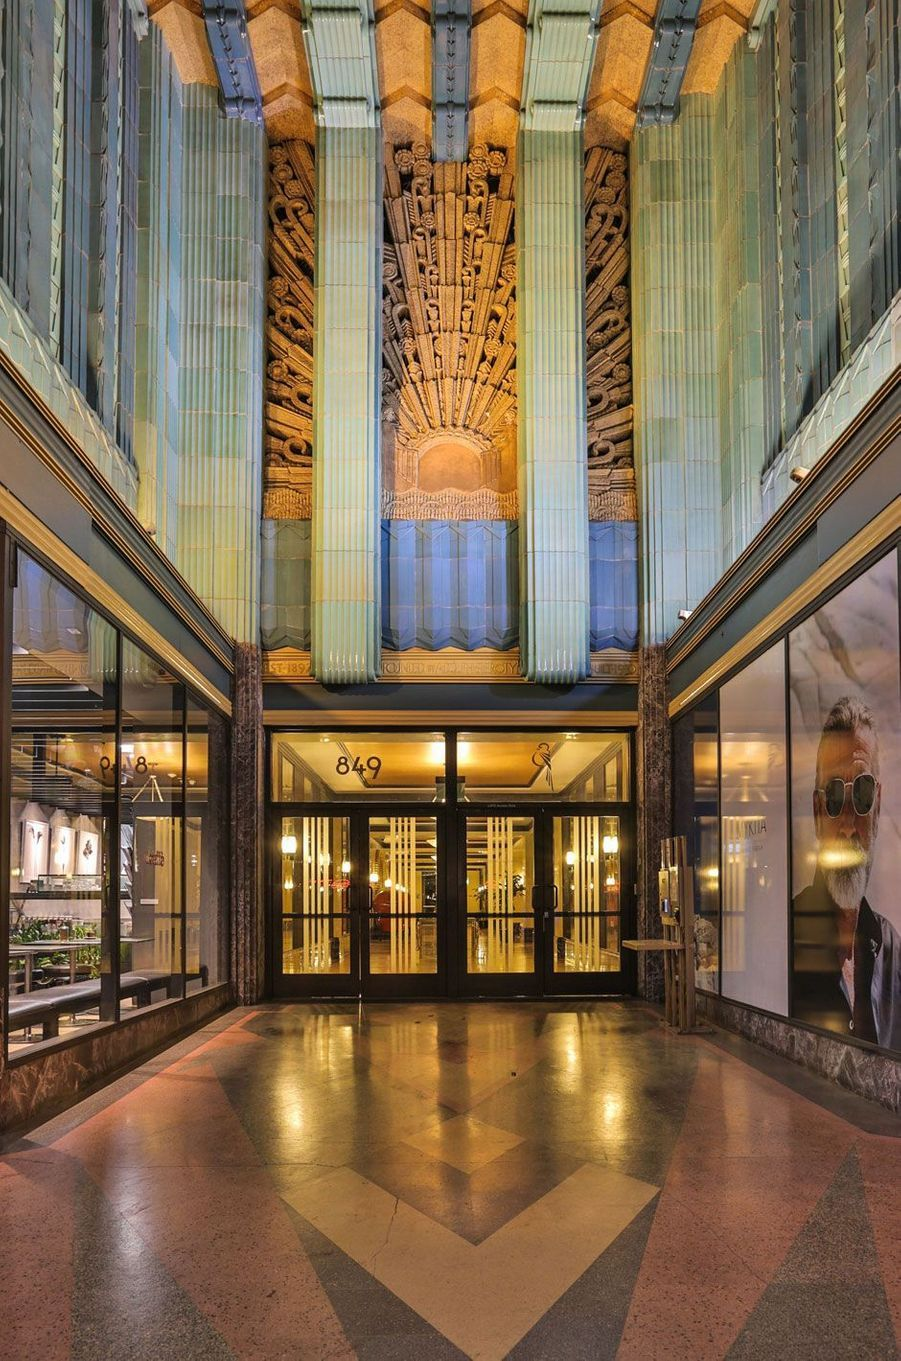 Le hall de l'immeuble Eastern Columbia Building